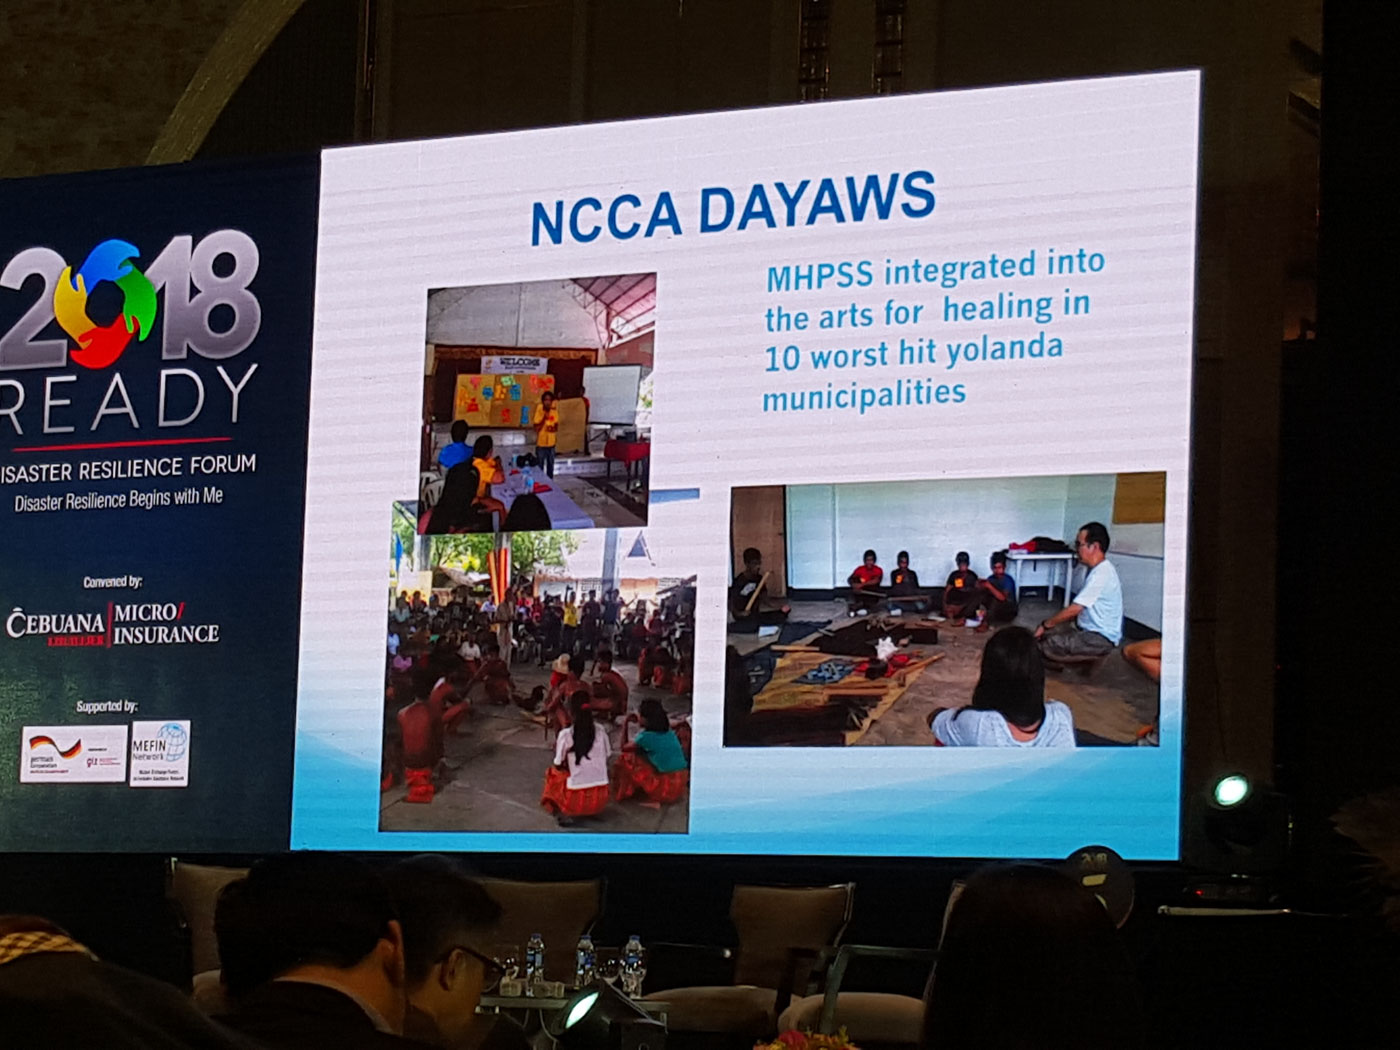 ART AS THERAPY. Lopez discusses how the NCCA's Dayaw festivals help Yolanda victims heal. Photo by Gaby N. Baizas/Rappler